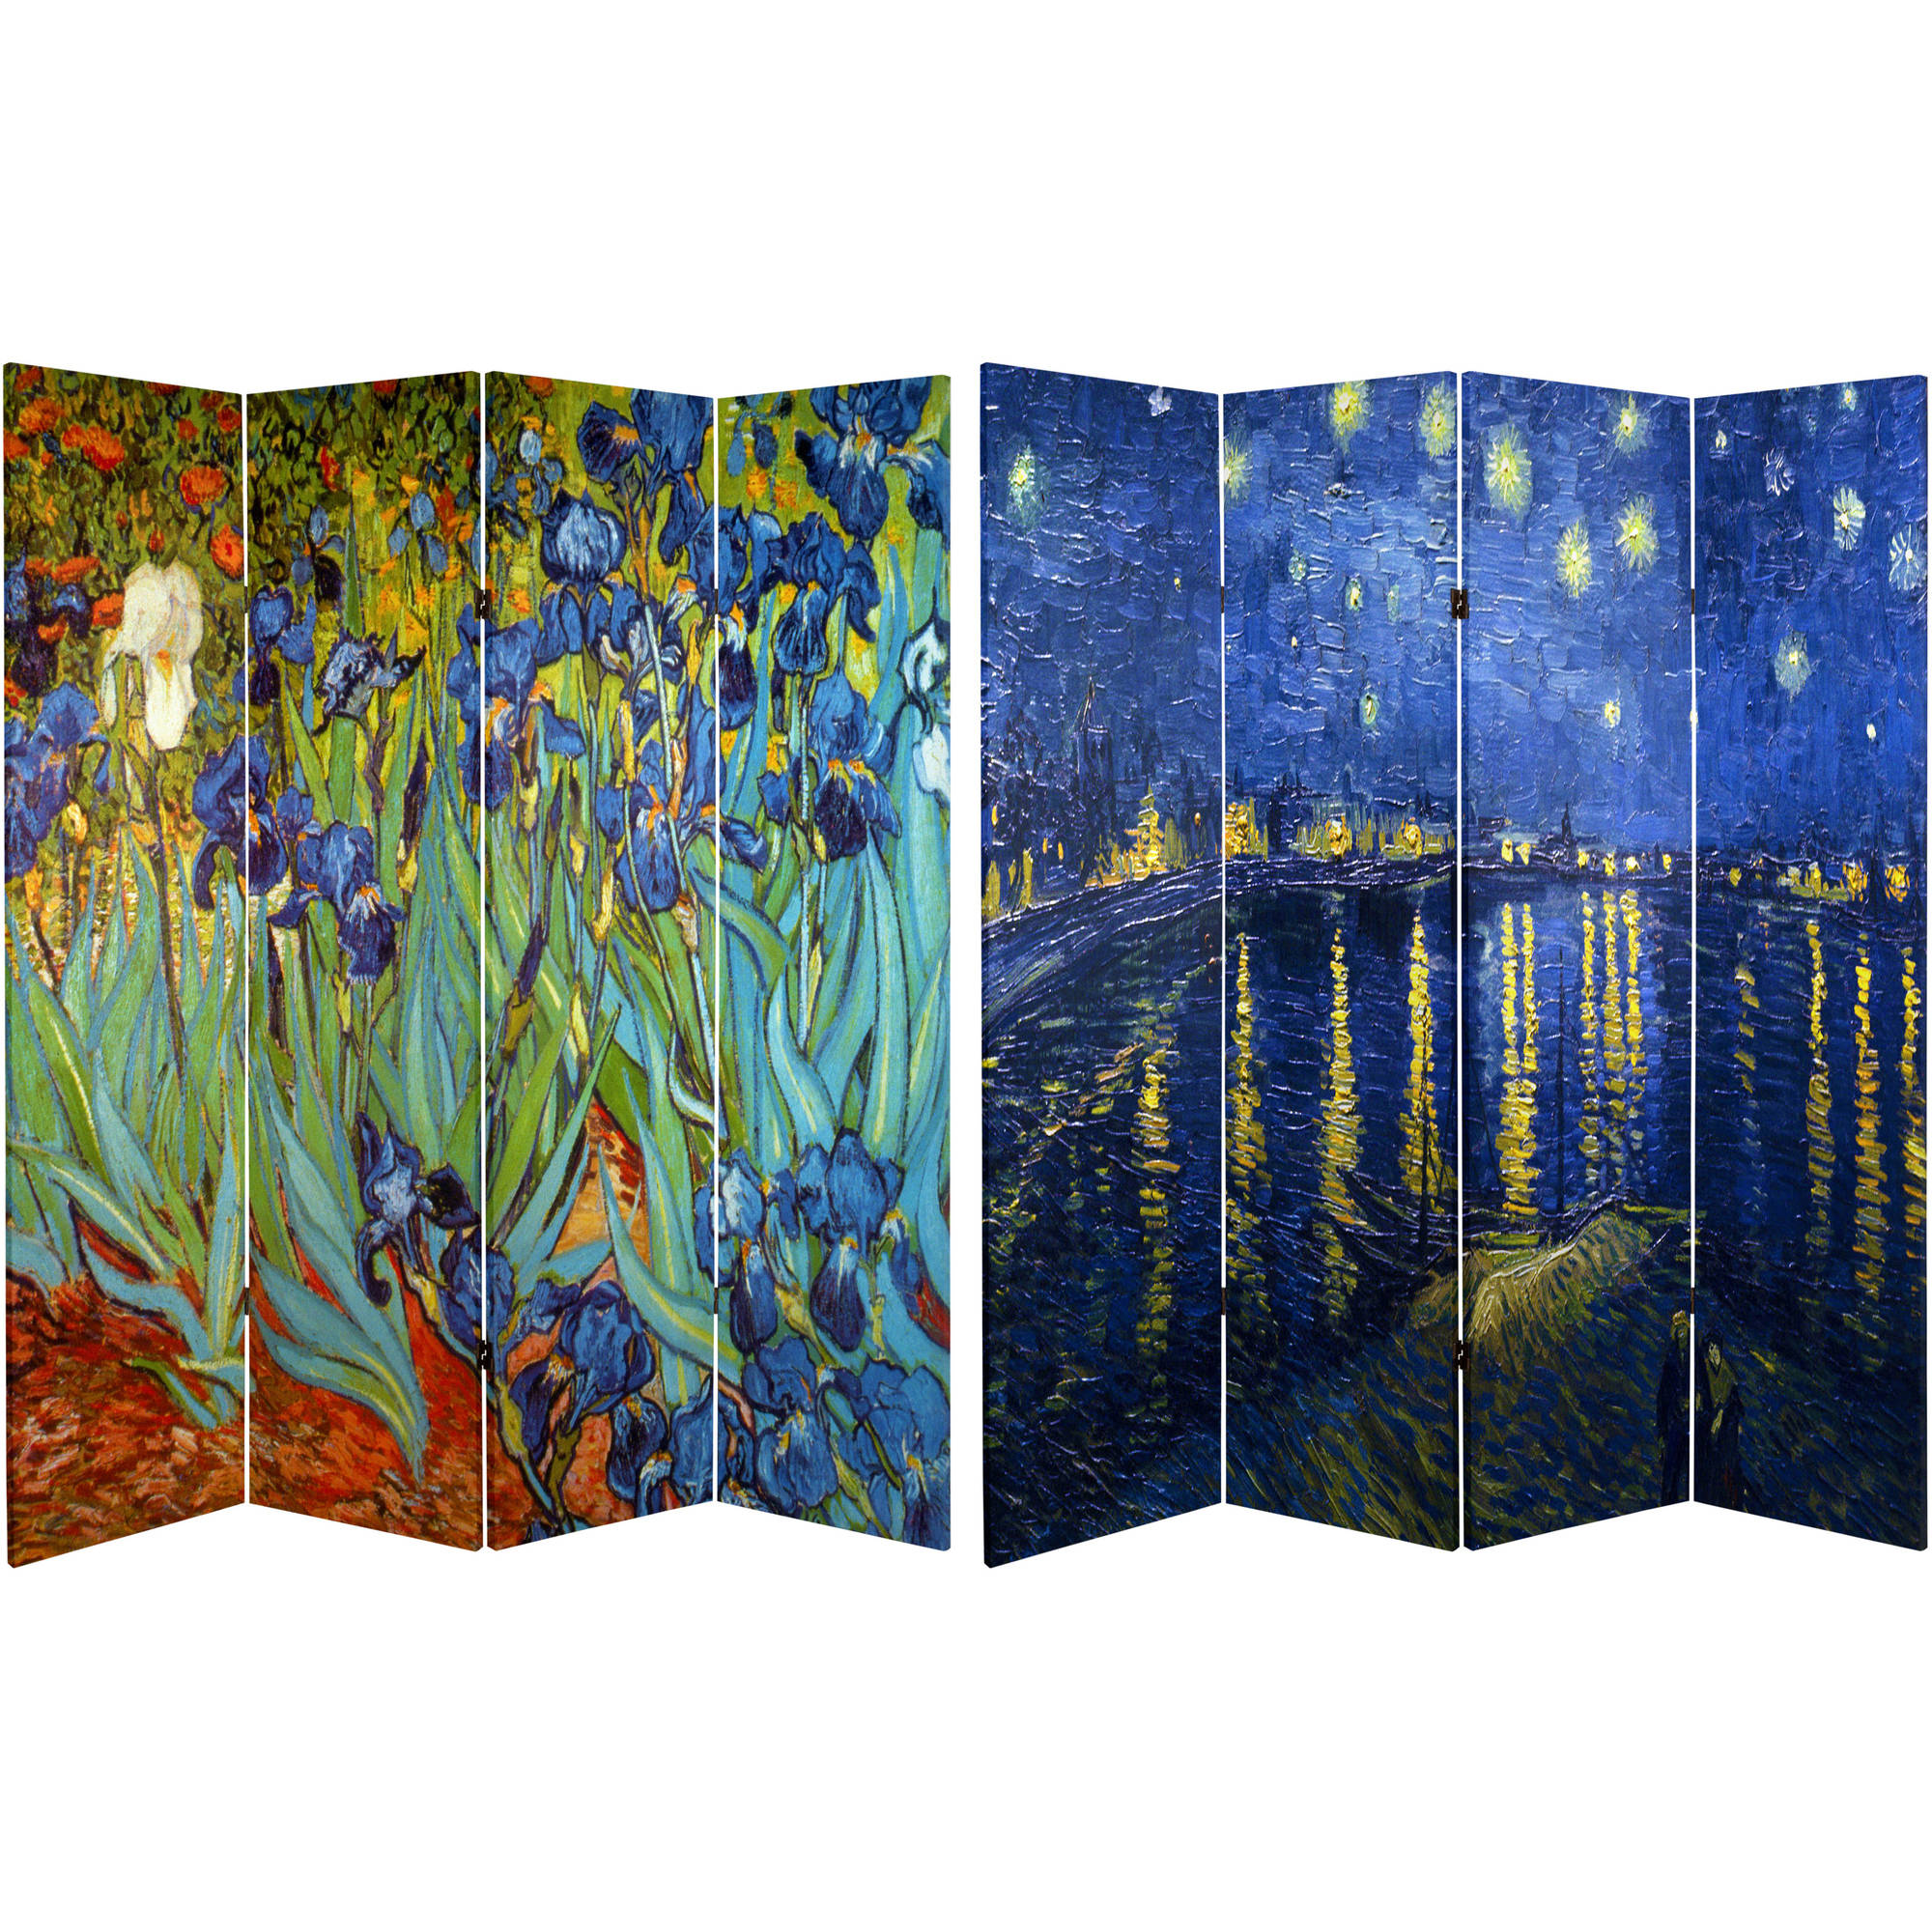 6' Tall Double Sided Works of Van Gogh Canvas Room Divider, Irises/Starry Night Over Rhone